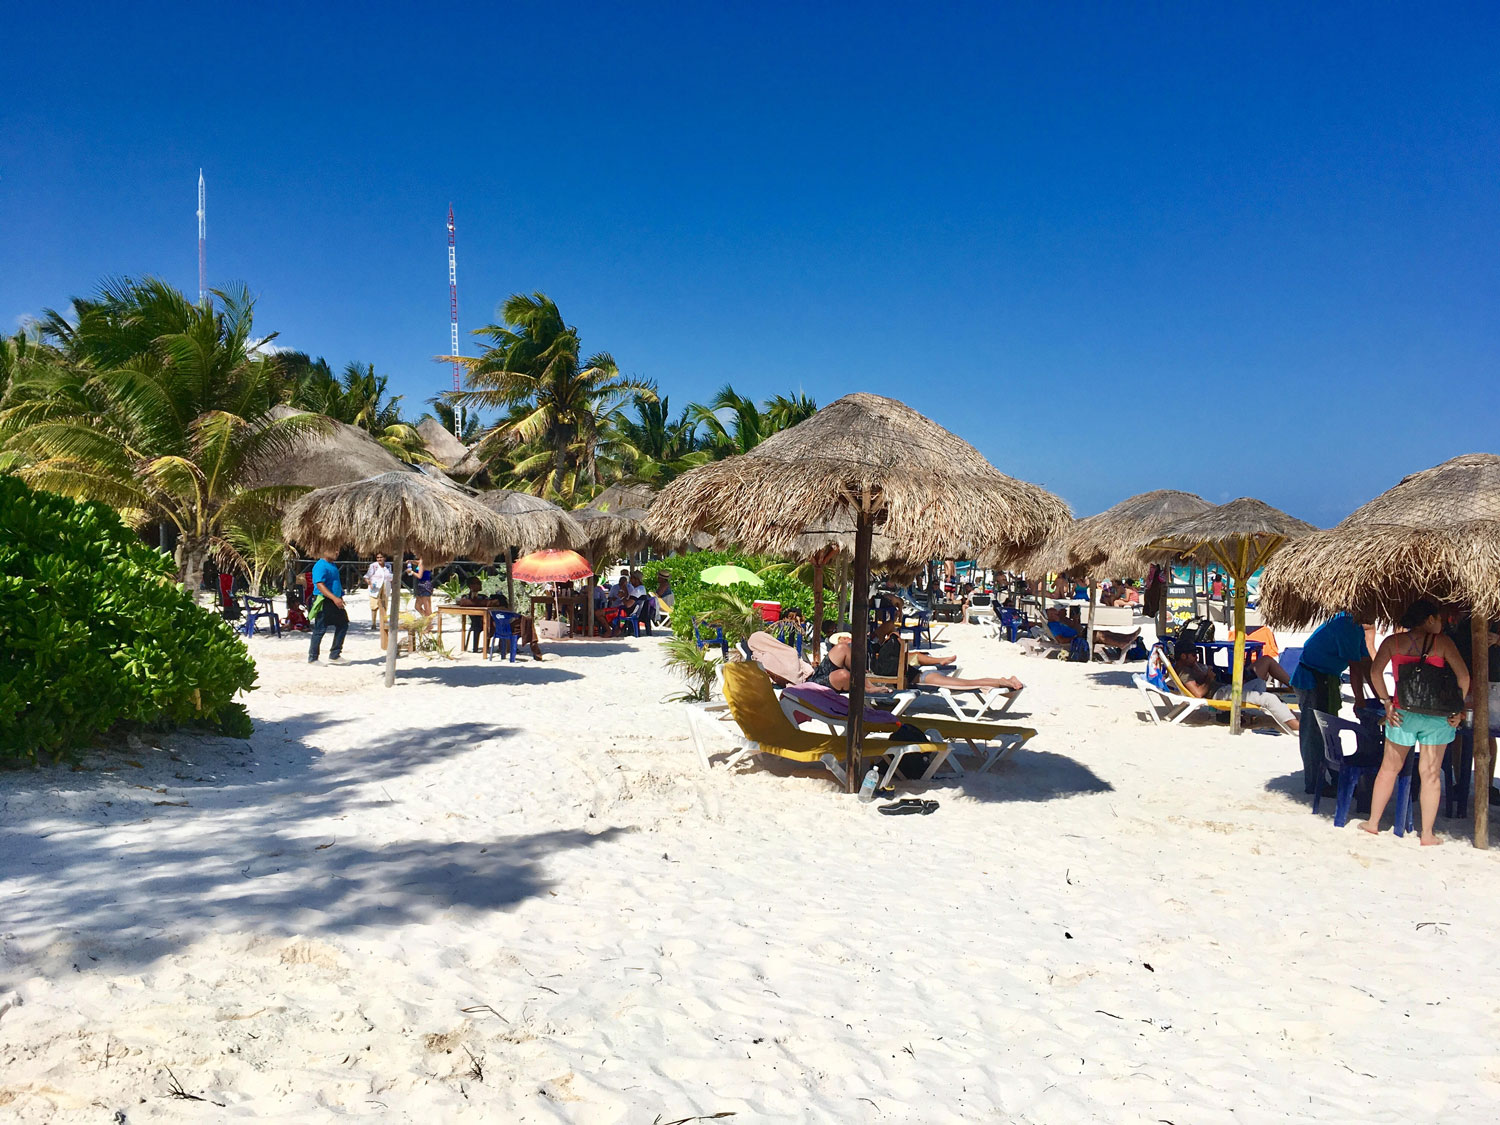 Hammocks_and_Ruins_Riviera_Maya_What_to_Do_Playa_Del_Carmen_Tulum_Beaches_Xpu_Ha_12.jpg